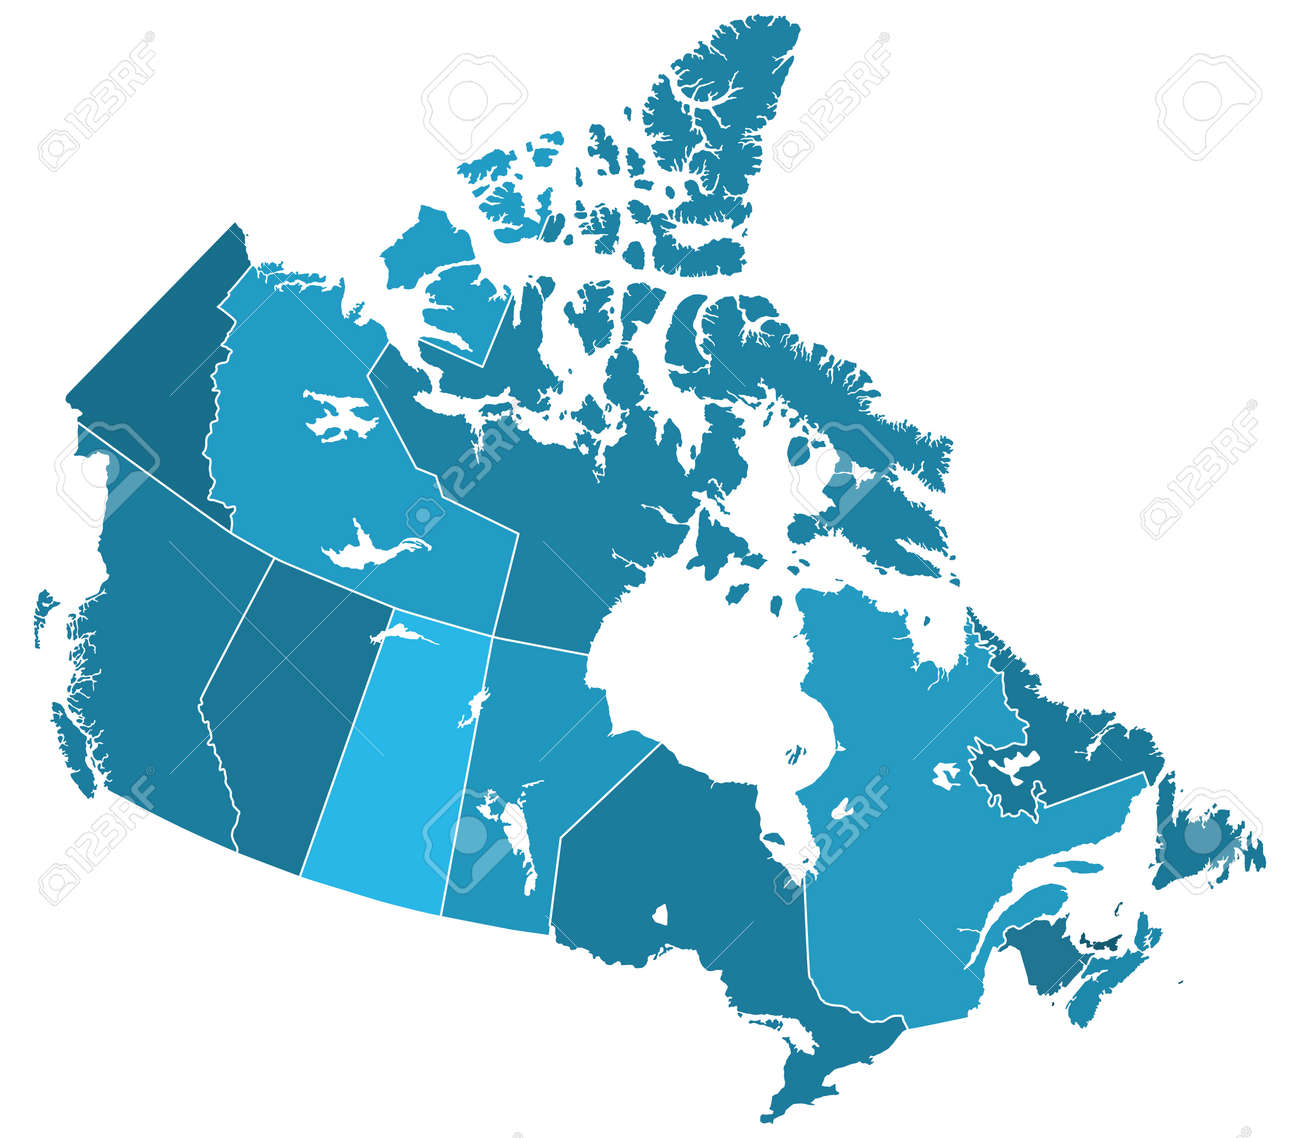 Map Of Canada Silhouette.Silhouette Regions Map Of The Canada All Objects Are Independent